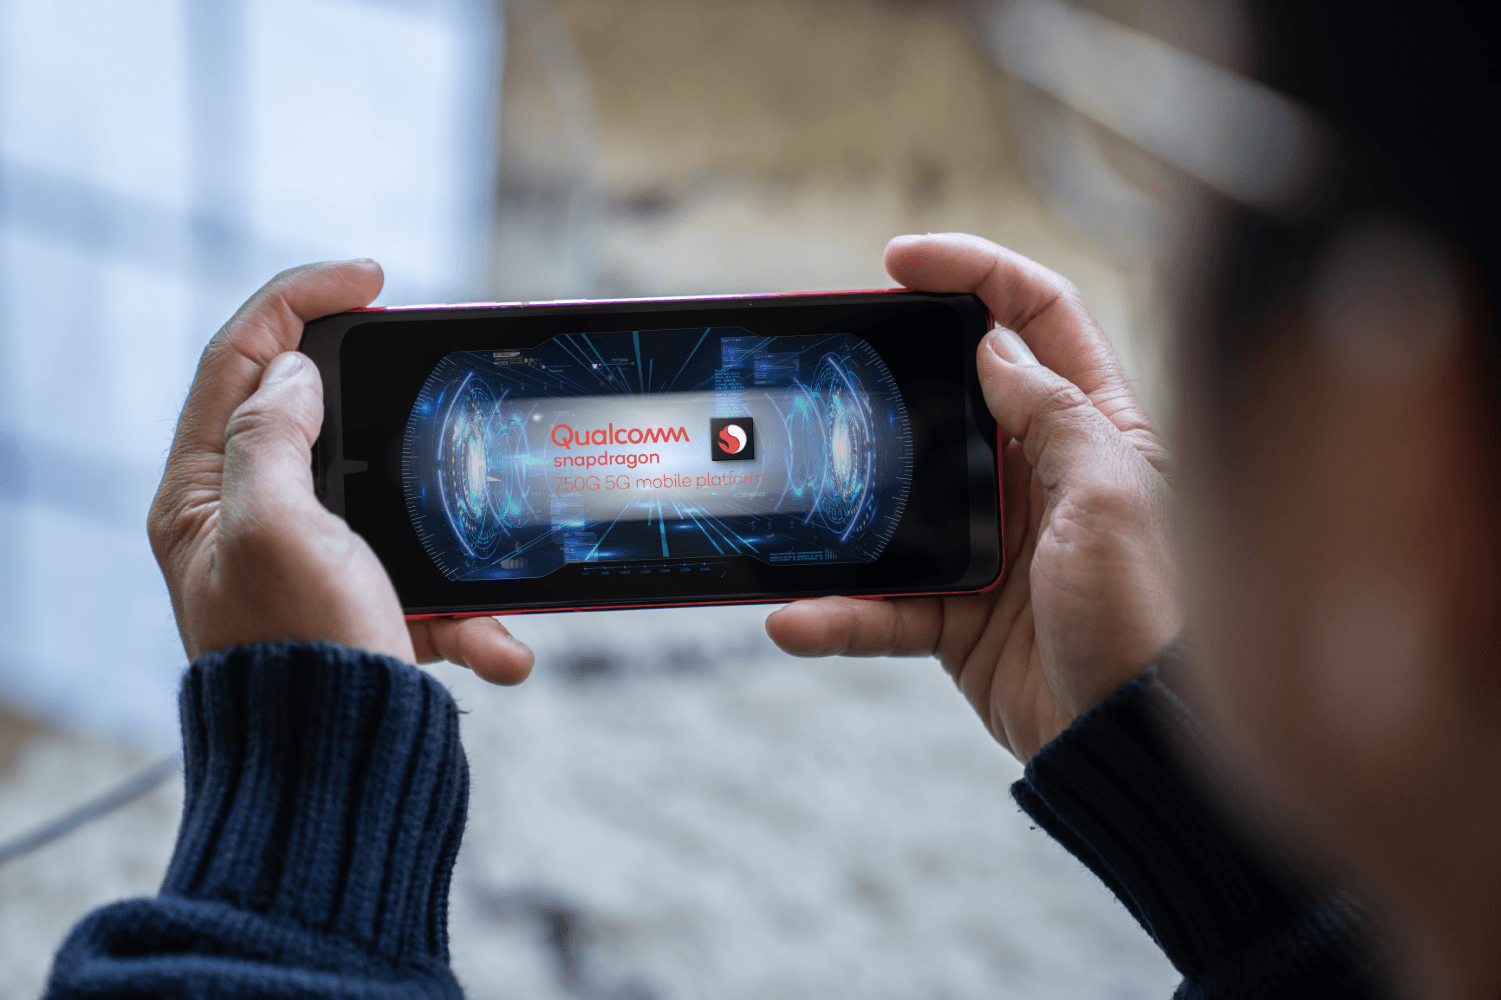 New Qualcomm Snapdragon 750G 5G 7-Series Mobile Platform small_qualcomm_snapdragon_750g_5g_mobile_platform_qrd_-_gaming.png